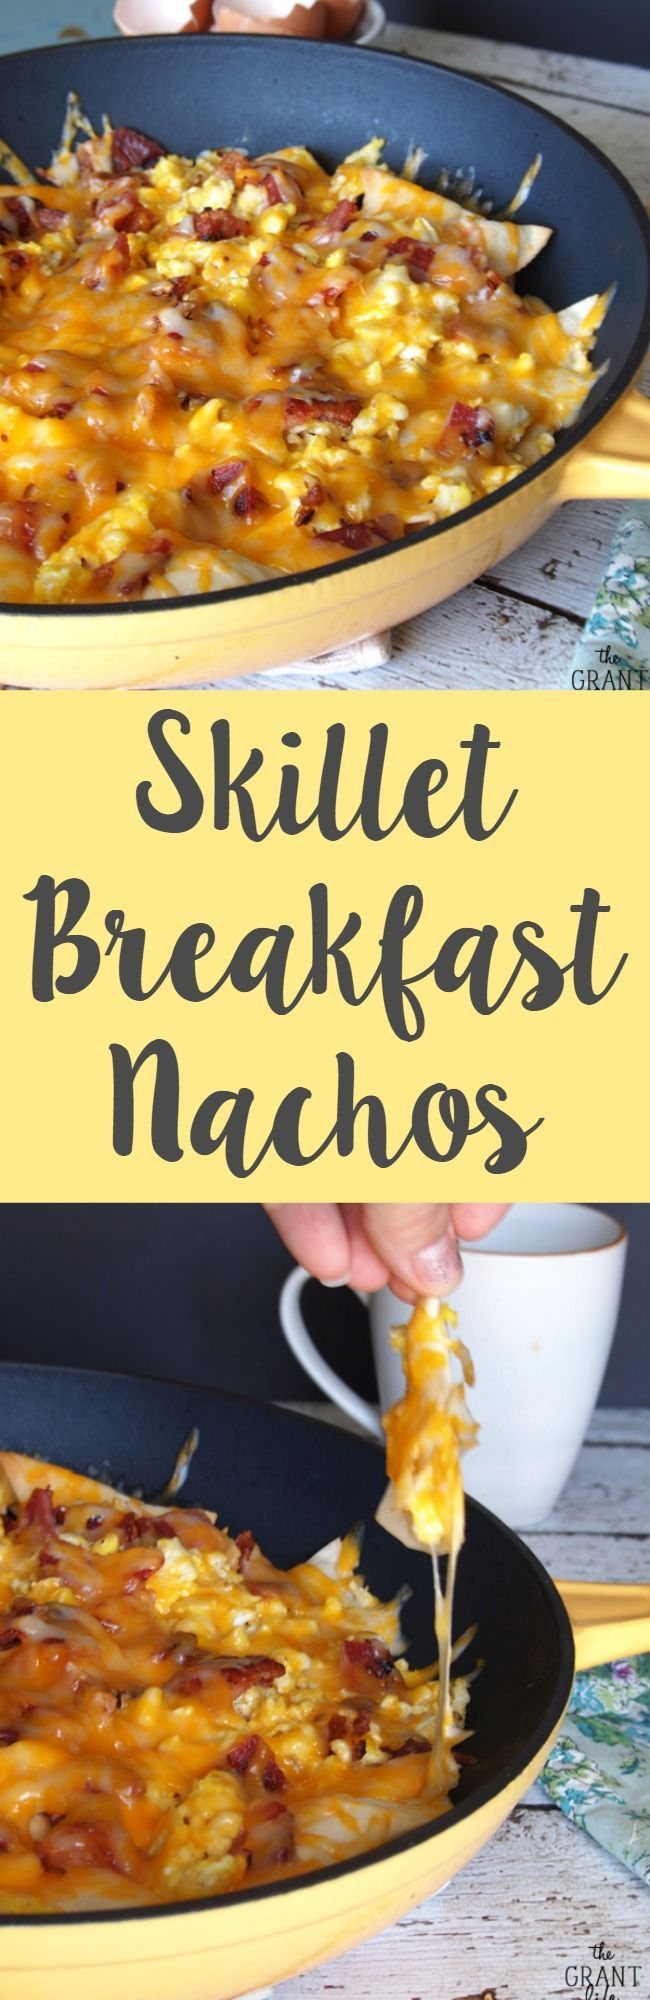 Skillet breakfast nachos! Make this easy recipe and watch it disappear